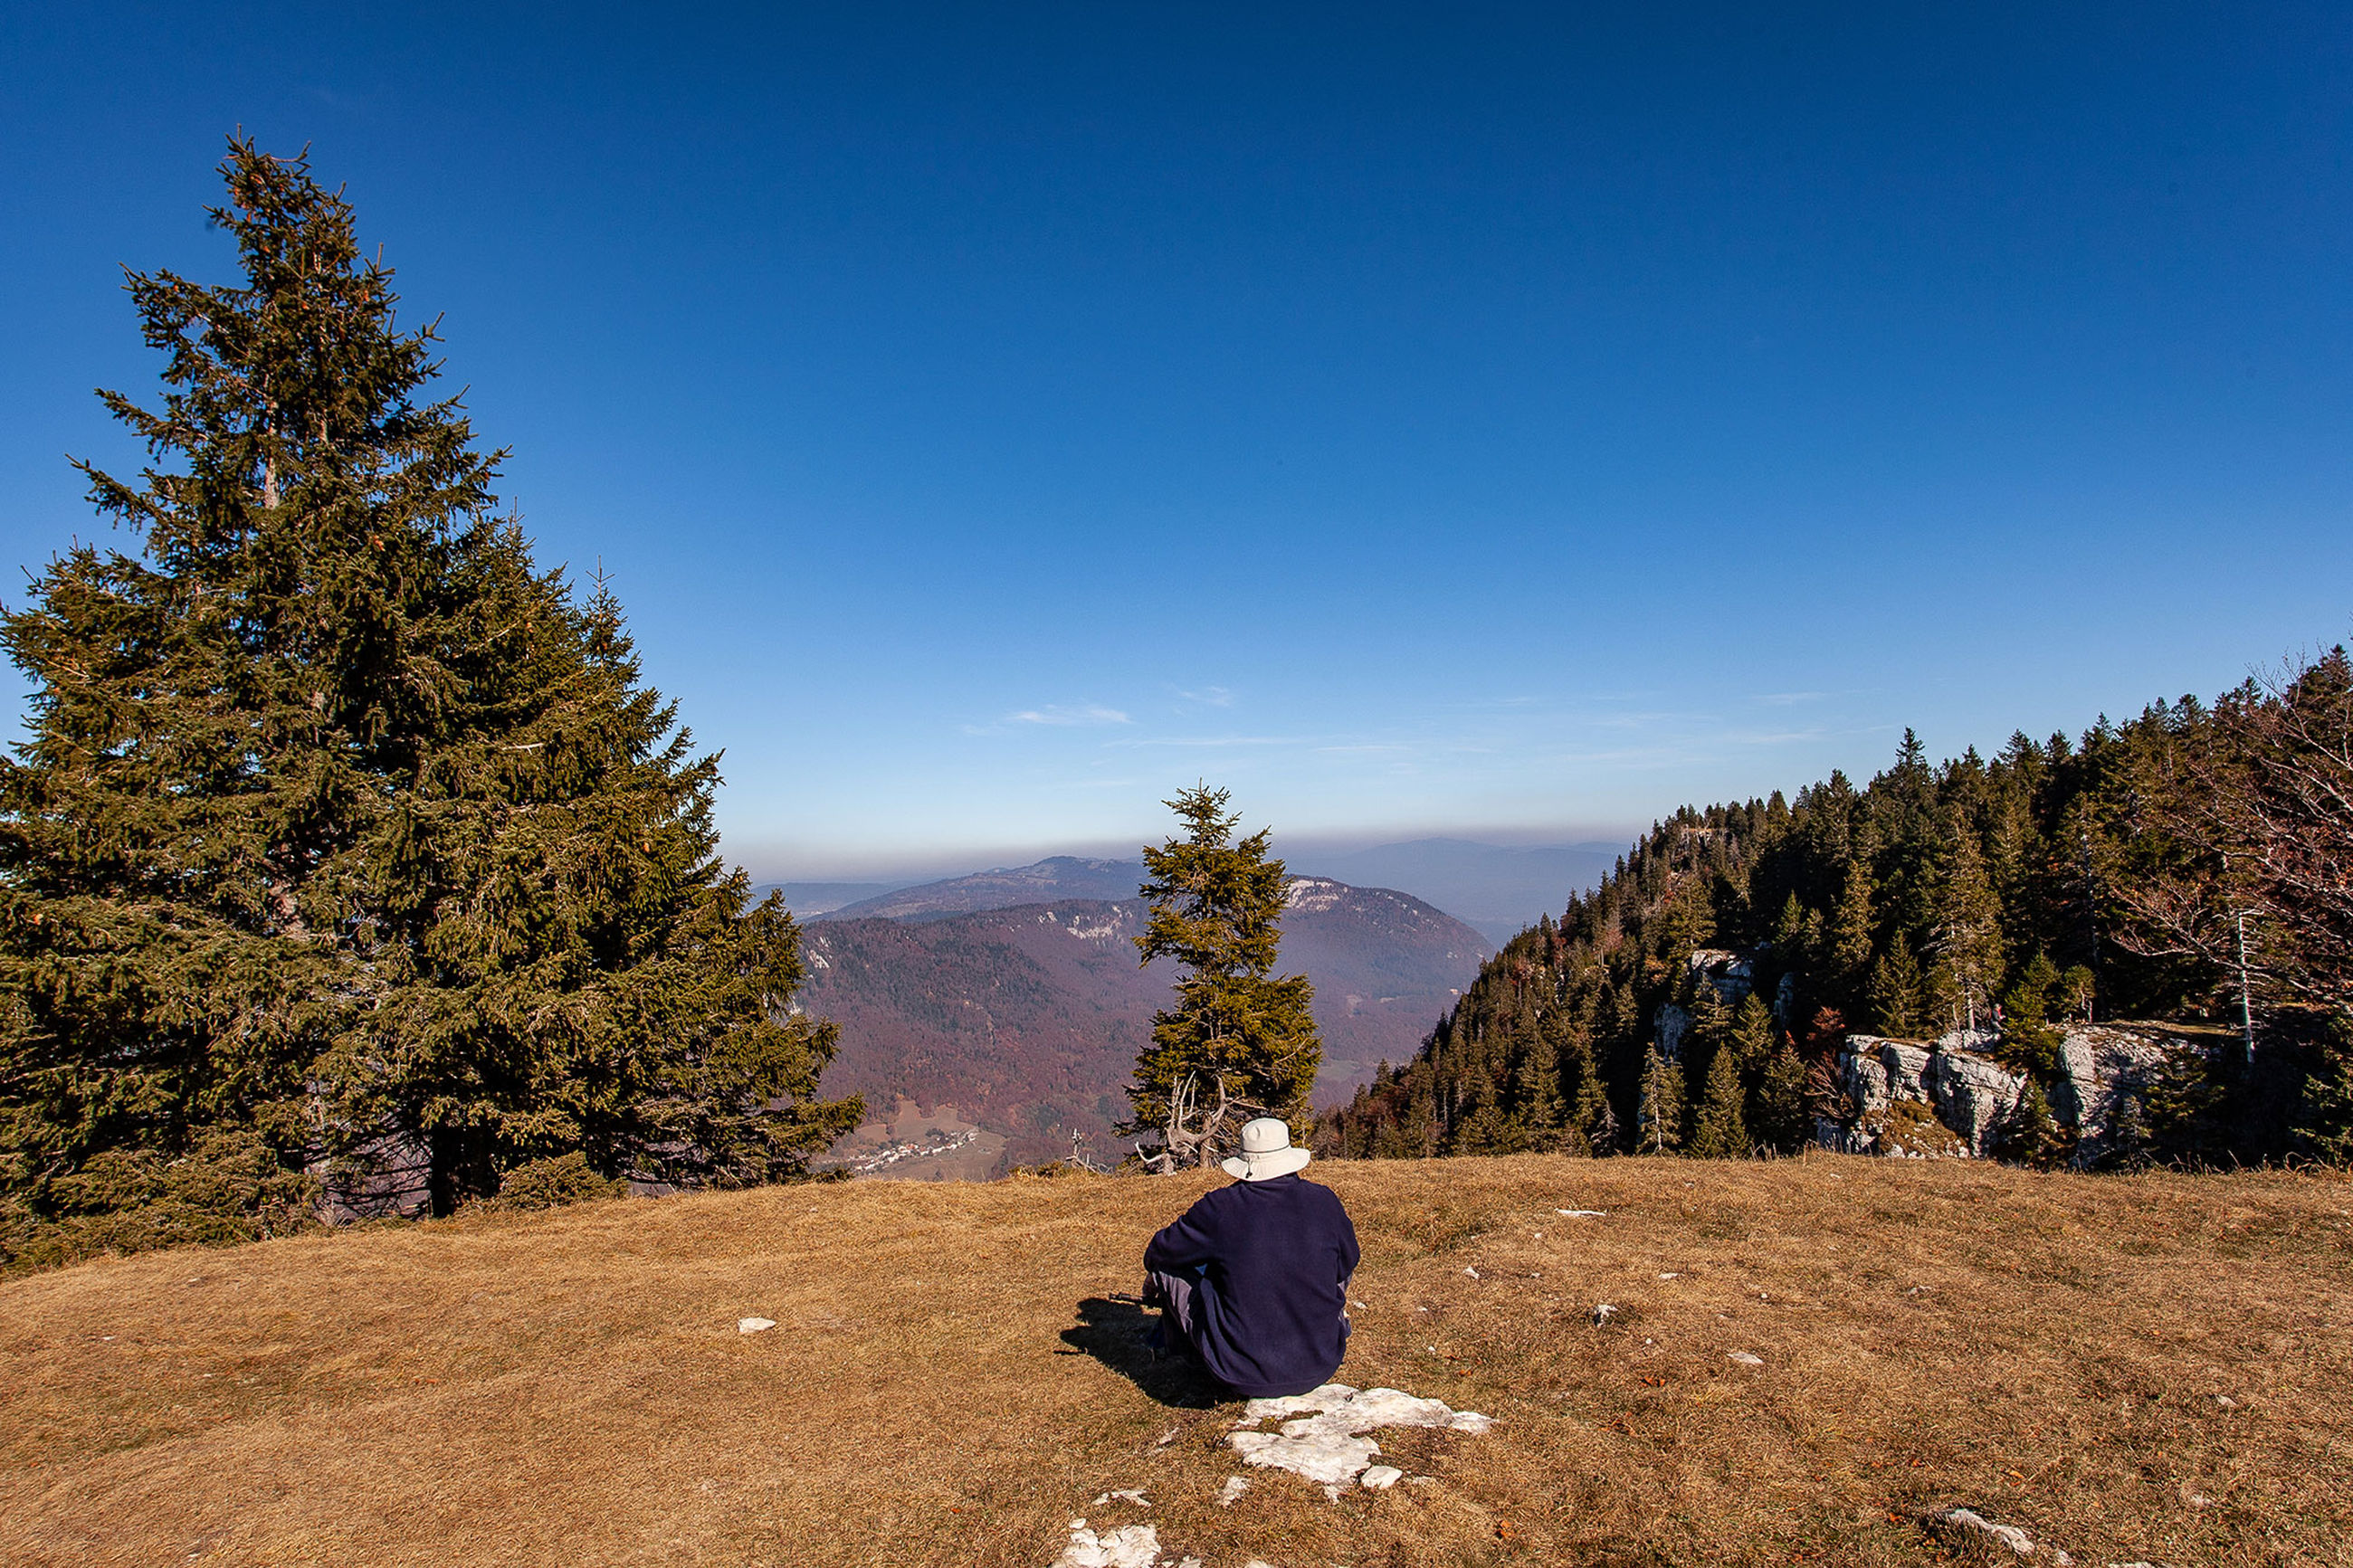 tree, plant, sky, real people, mountain, sitting, one person, leisure activity, scenics - nature, beauty in nature, tranquility, nature, non-urban scene, tranquil scene, rear view, lifestyles, environment, men, landscape, outdoors